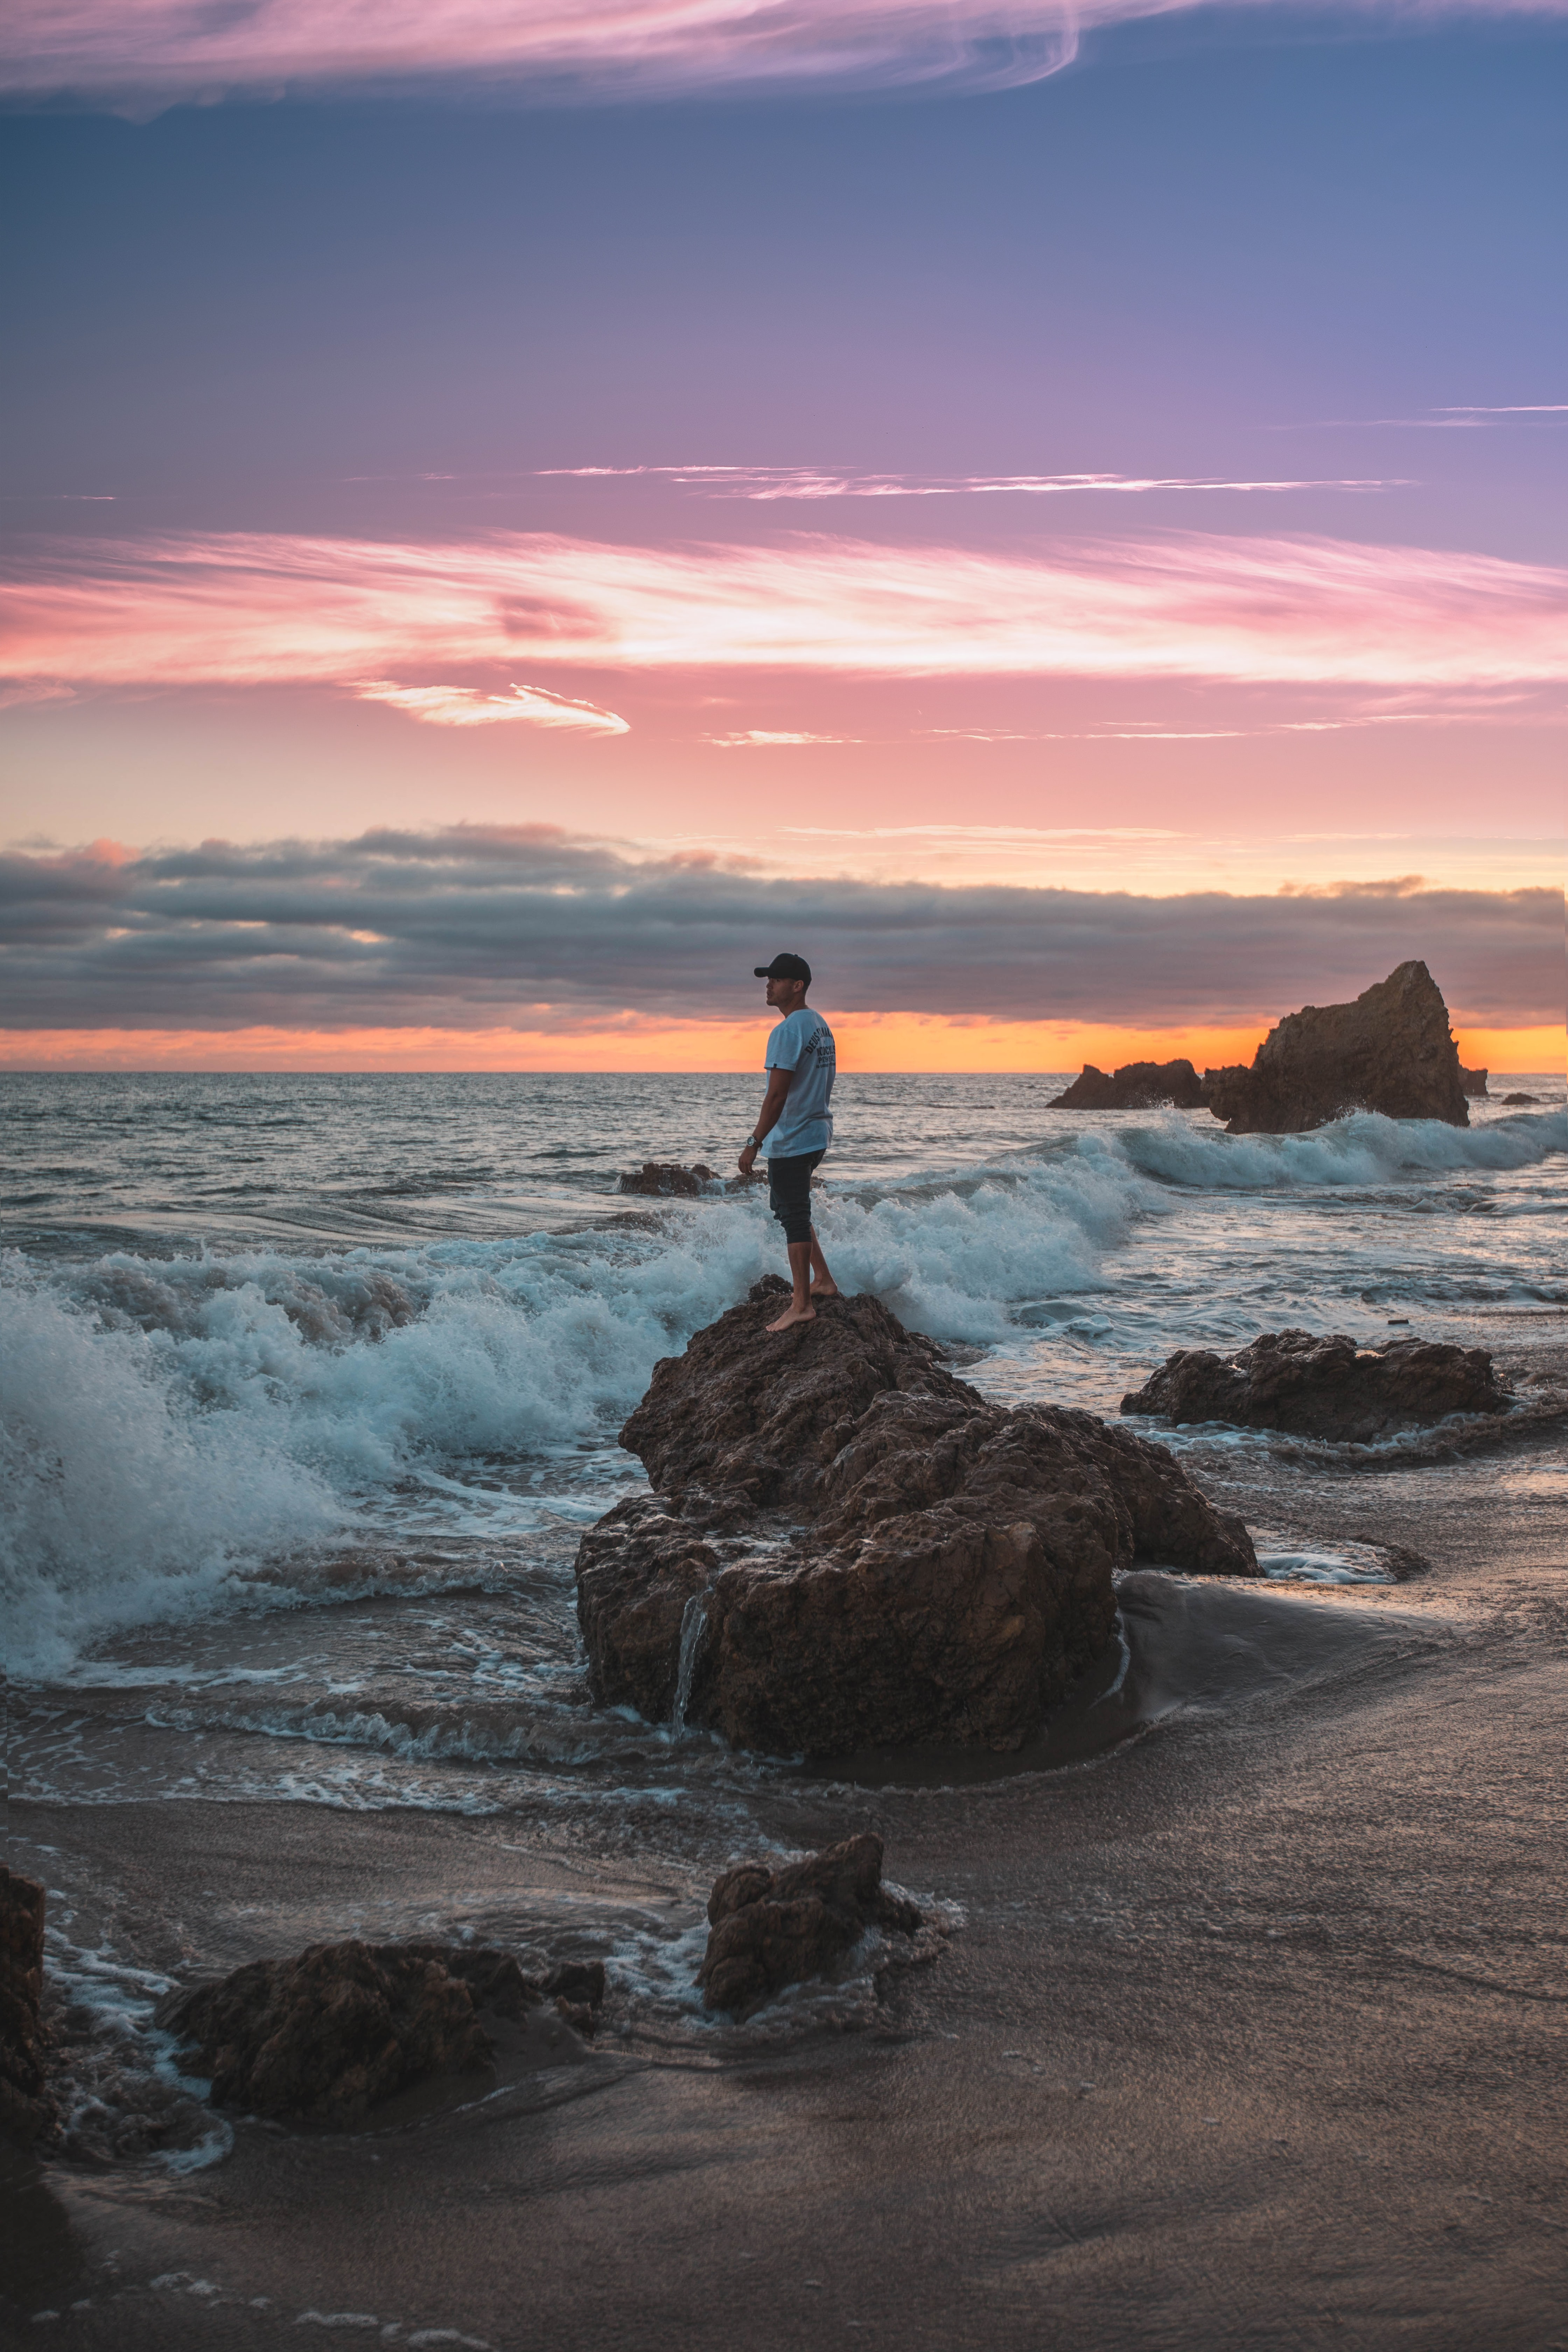 man standing on rock with waves during daytime